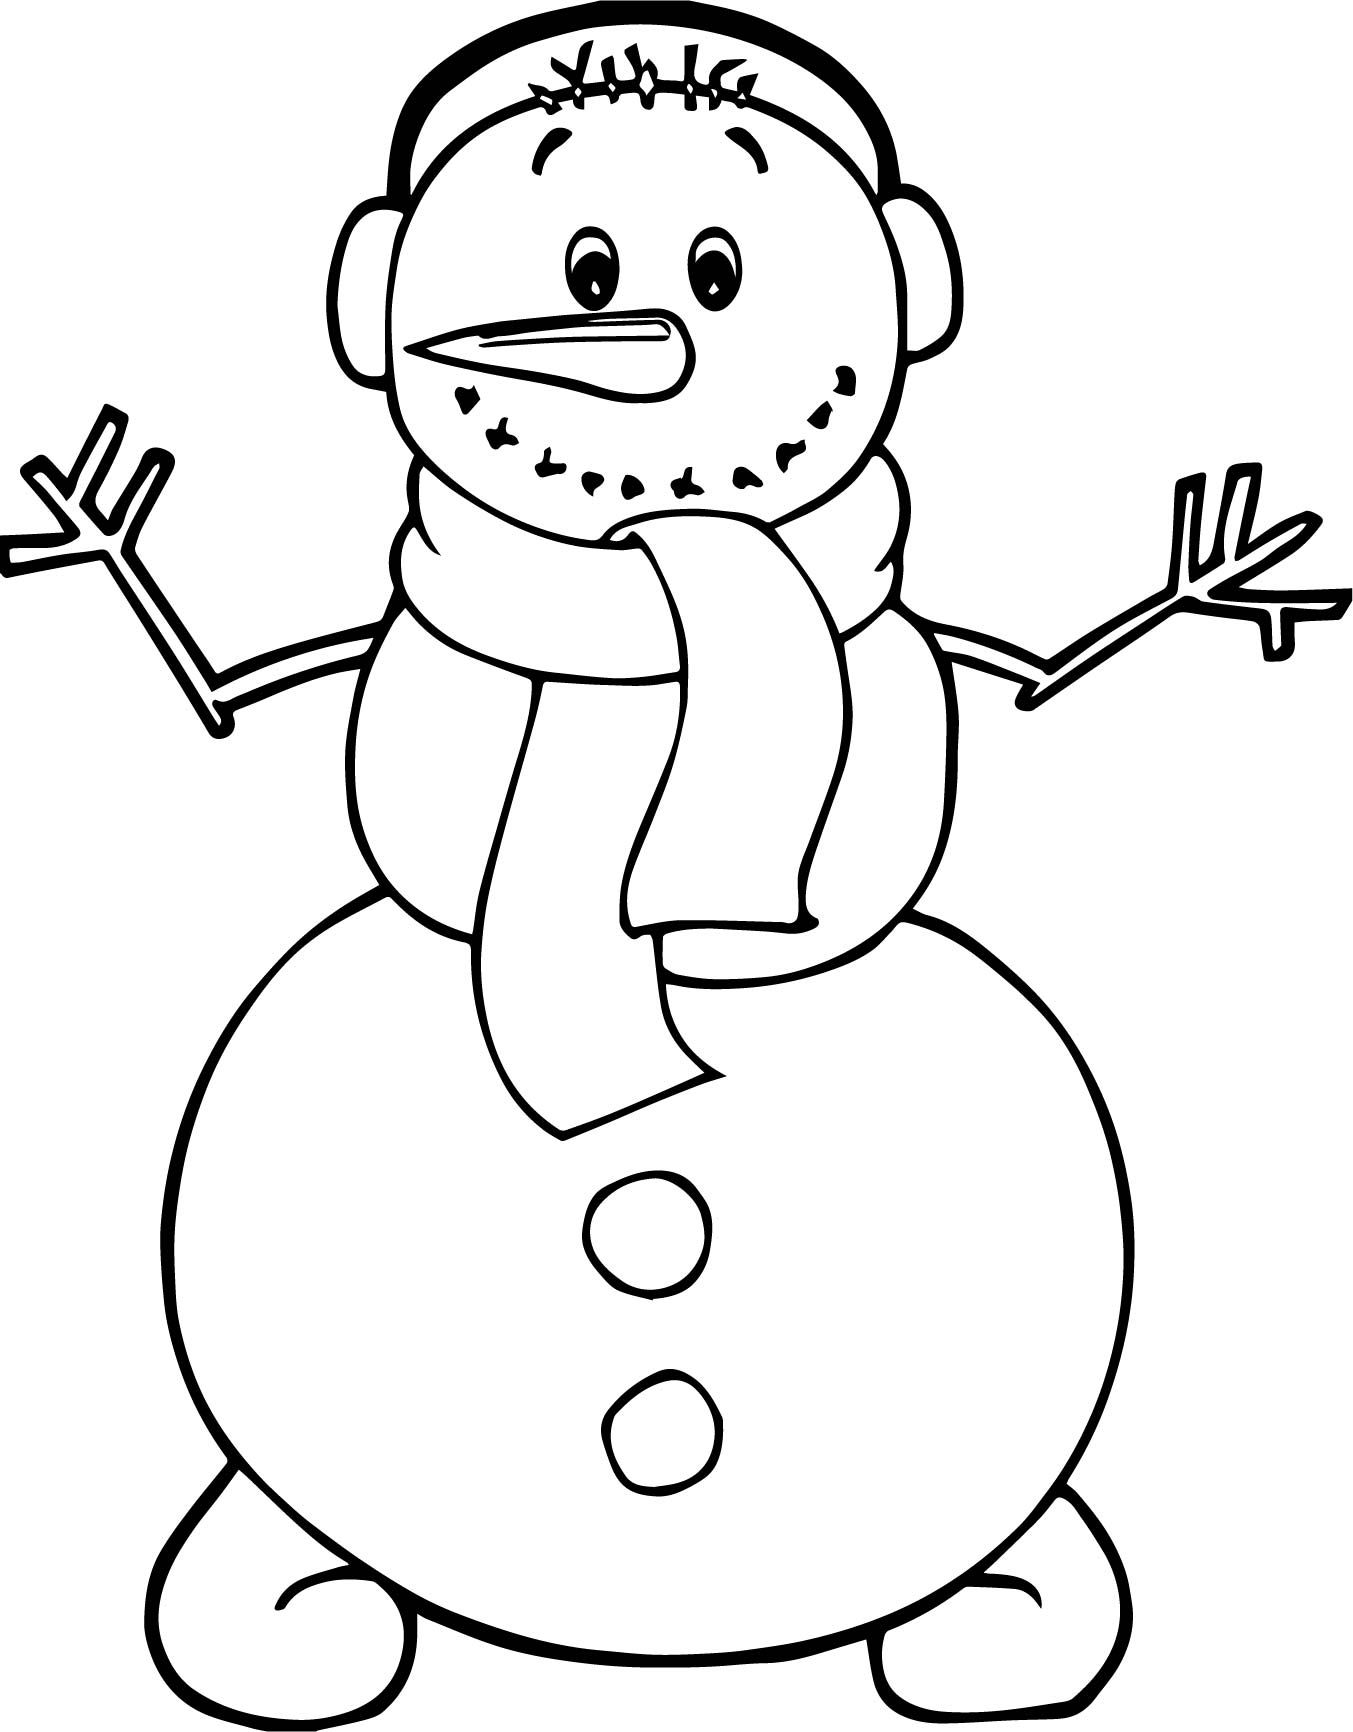 cool Winter Cute Snowman Coloring Page | Adorable Snowmen ...